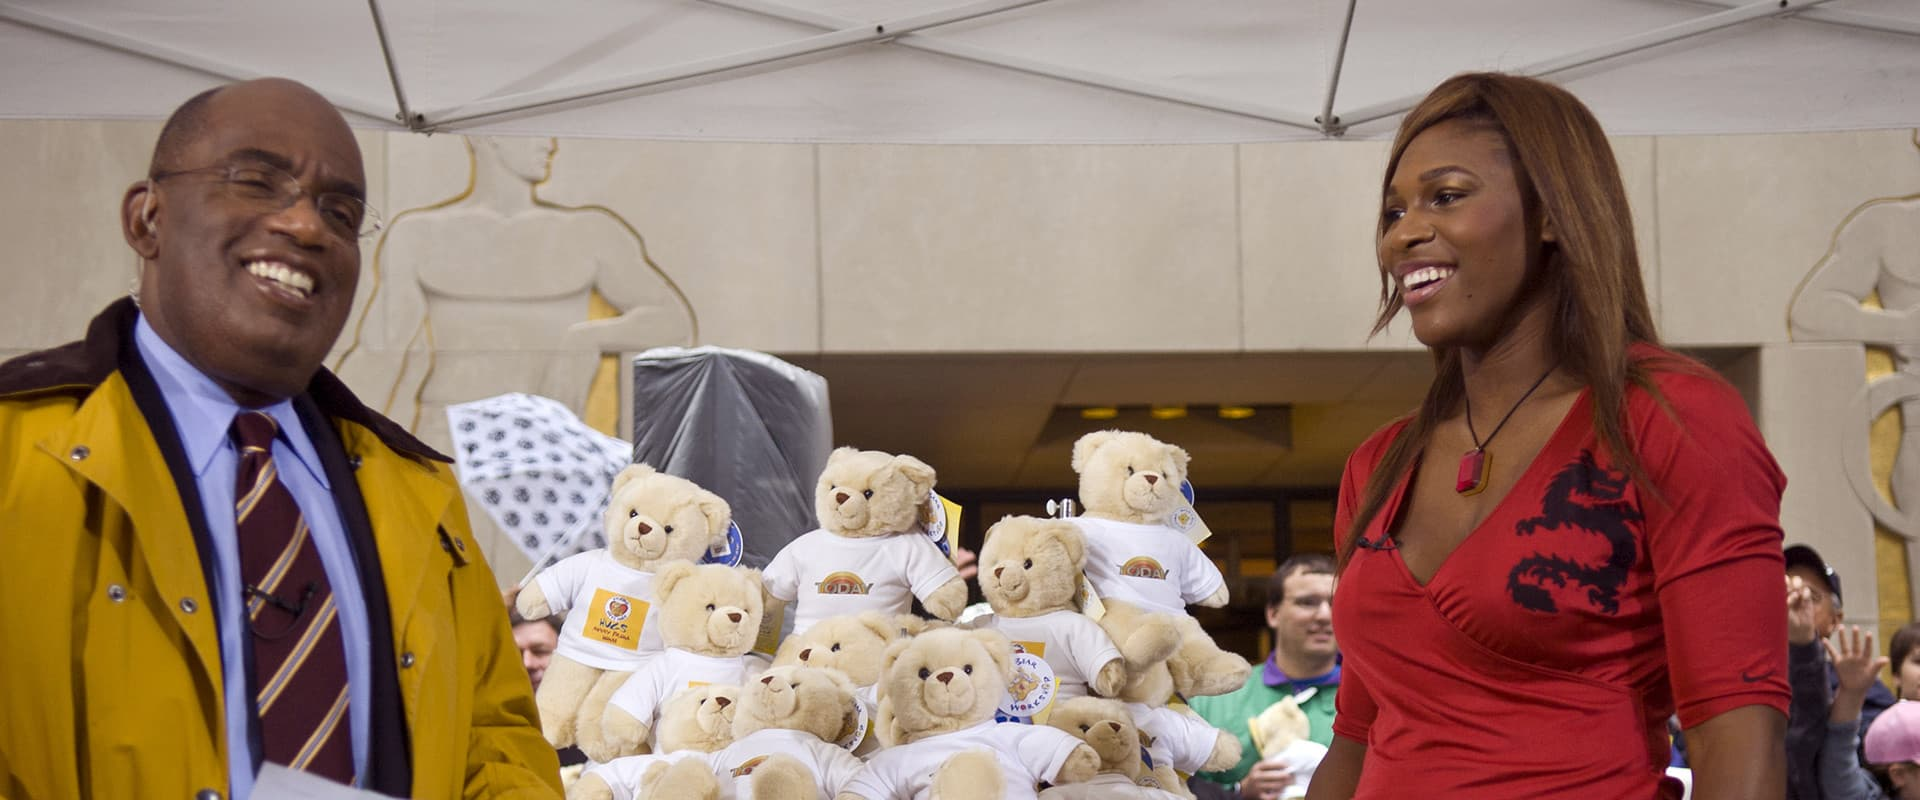 Image of Al Roker from build a bear public relations campaign